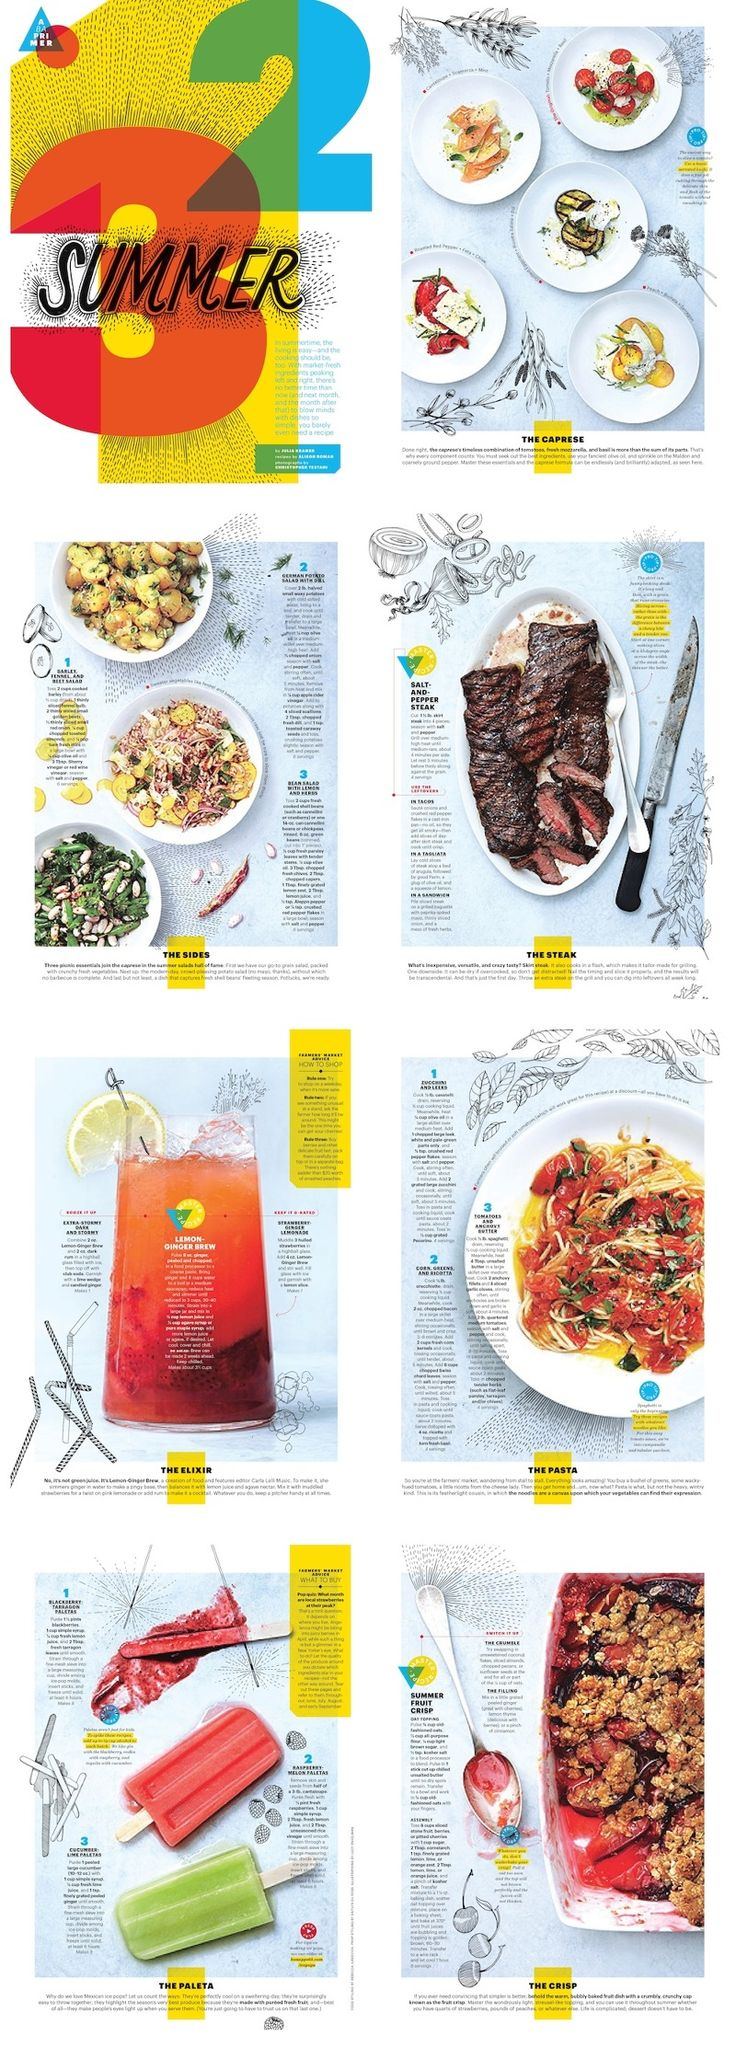 Alaina Sullivan Bon Appetit magazine, June 2014. Illustrations by Lucy Engelman